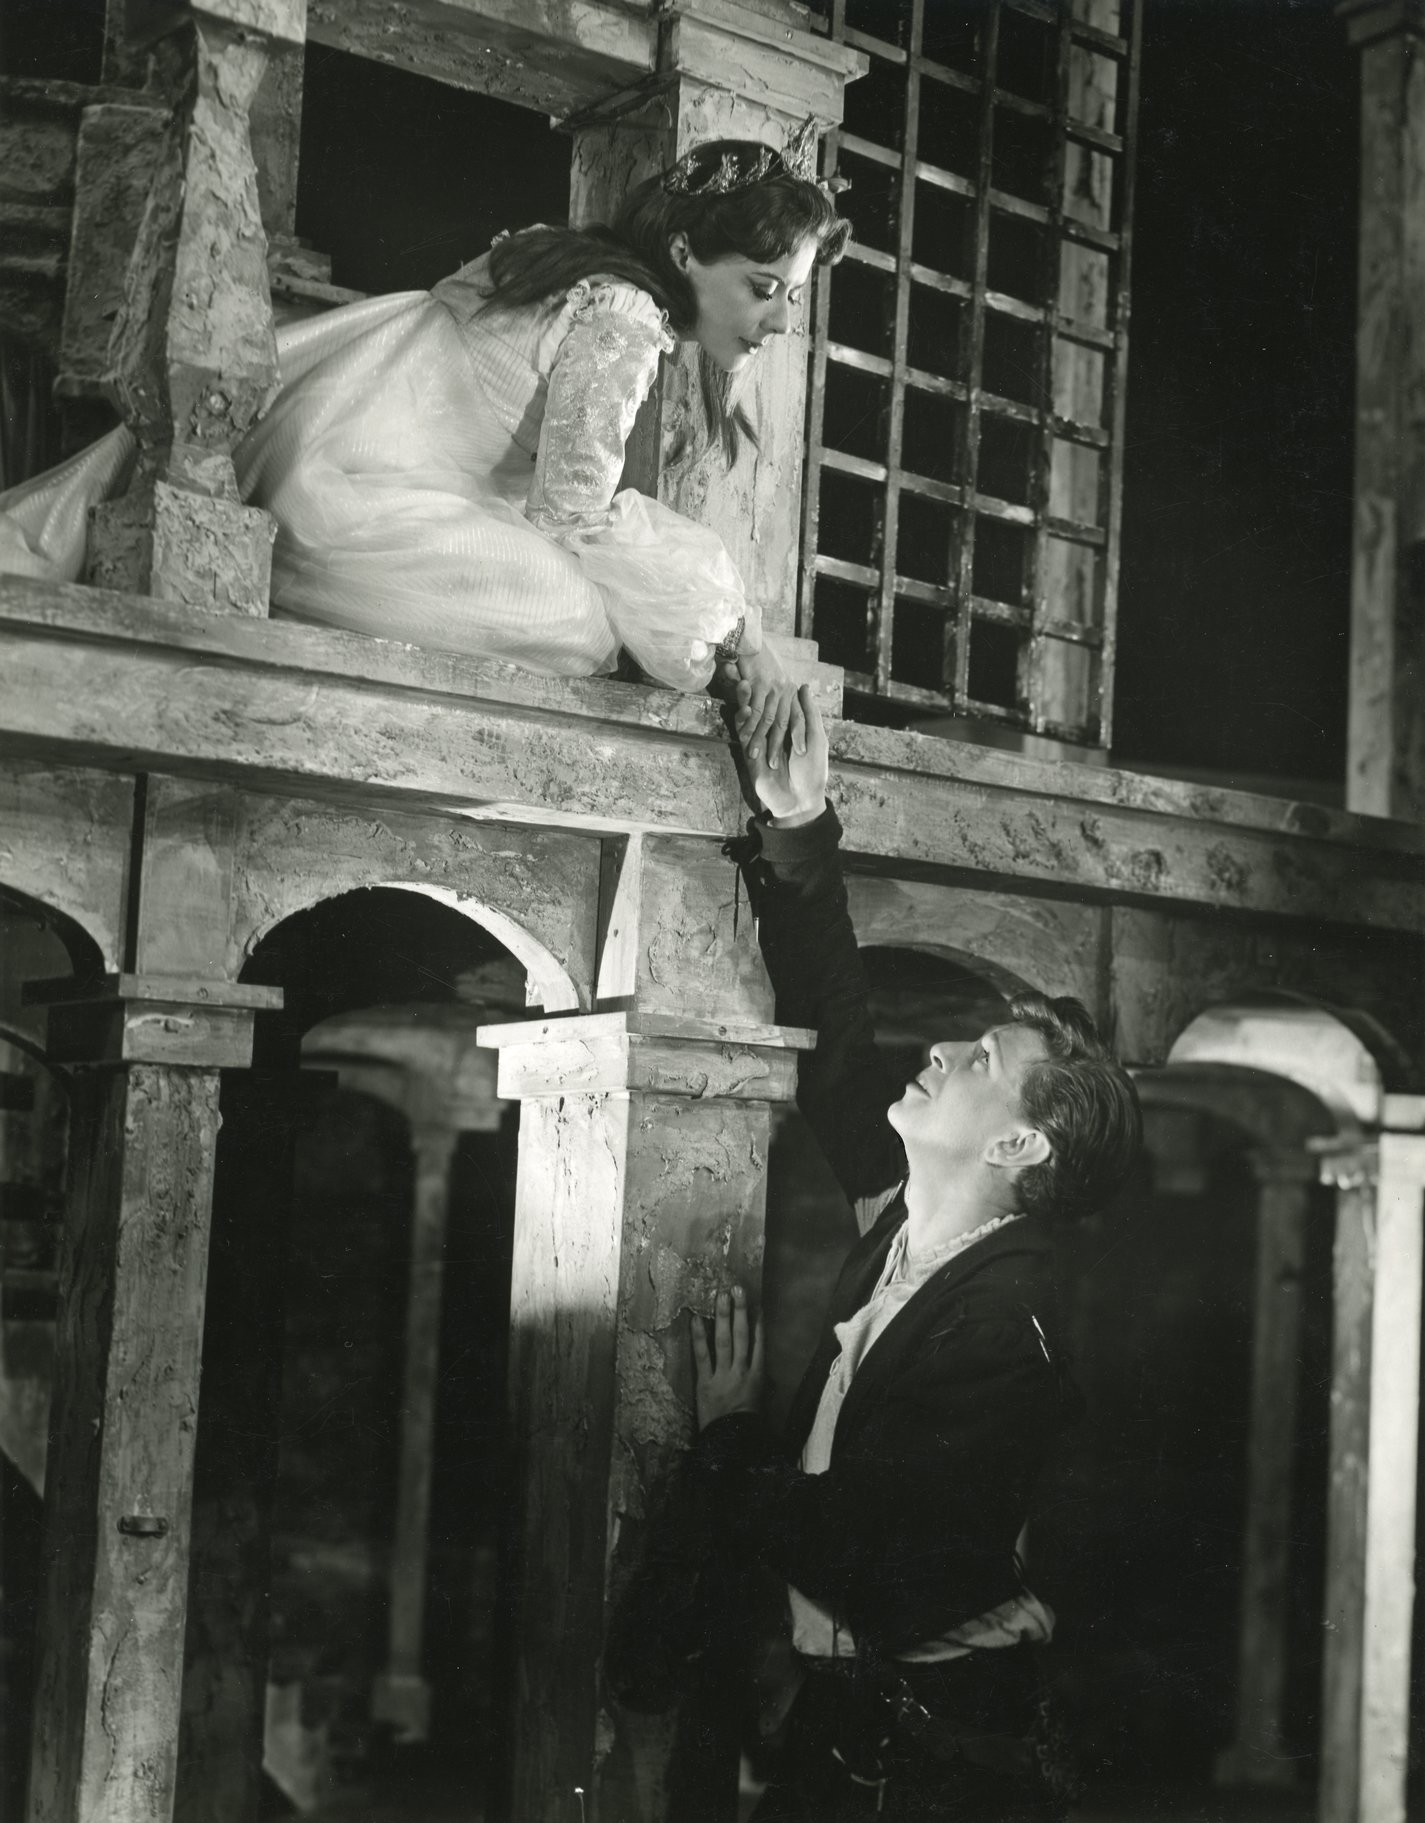 Romeo and Juliet hold hands from the balcony.